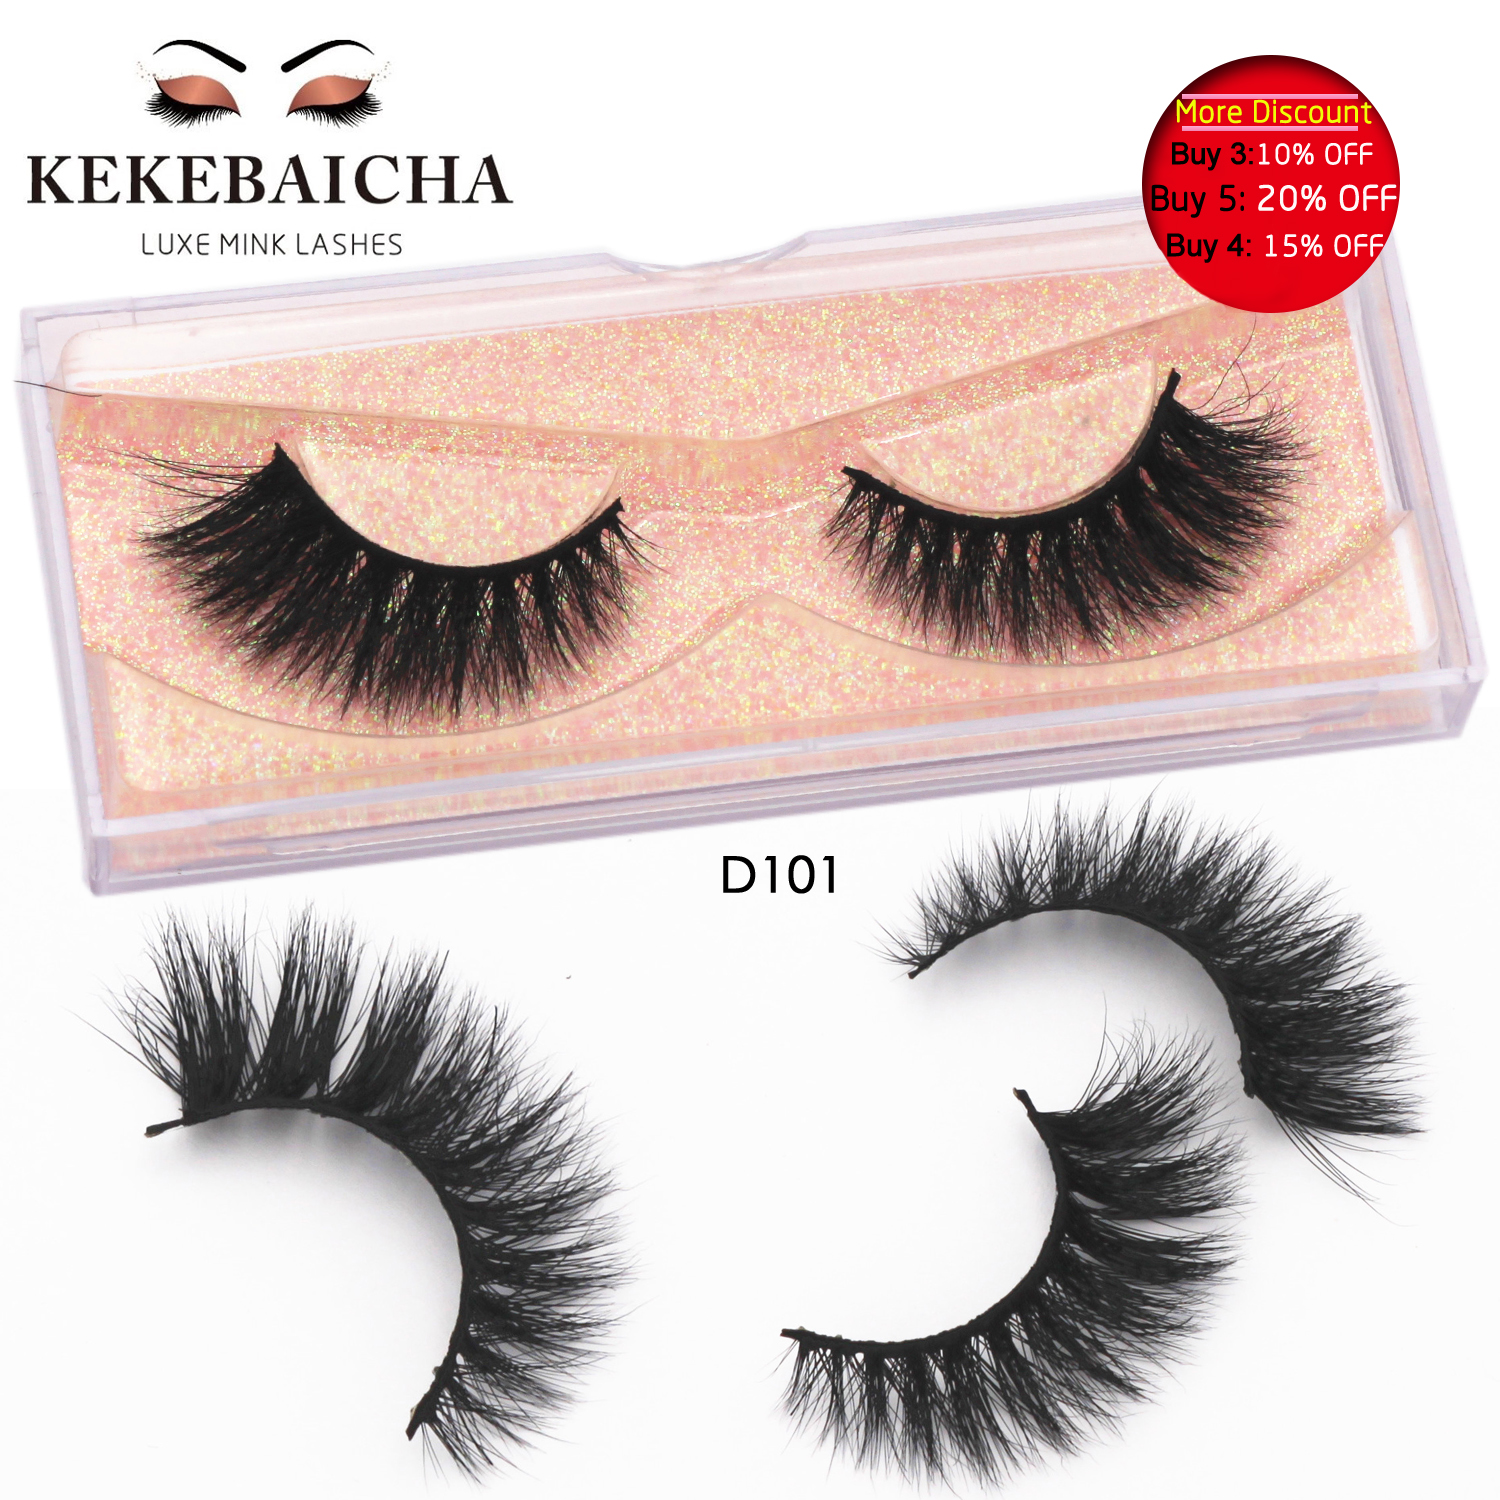 KEKEBAICHA 3D Mink Eyelashes Medium Volume False Eyelashes Handmade Reusable 3D Mink Lash Full Strip Lashes D101 Maquiagem Rzesy